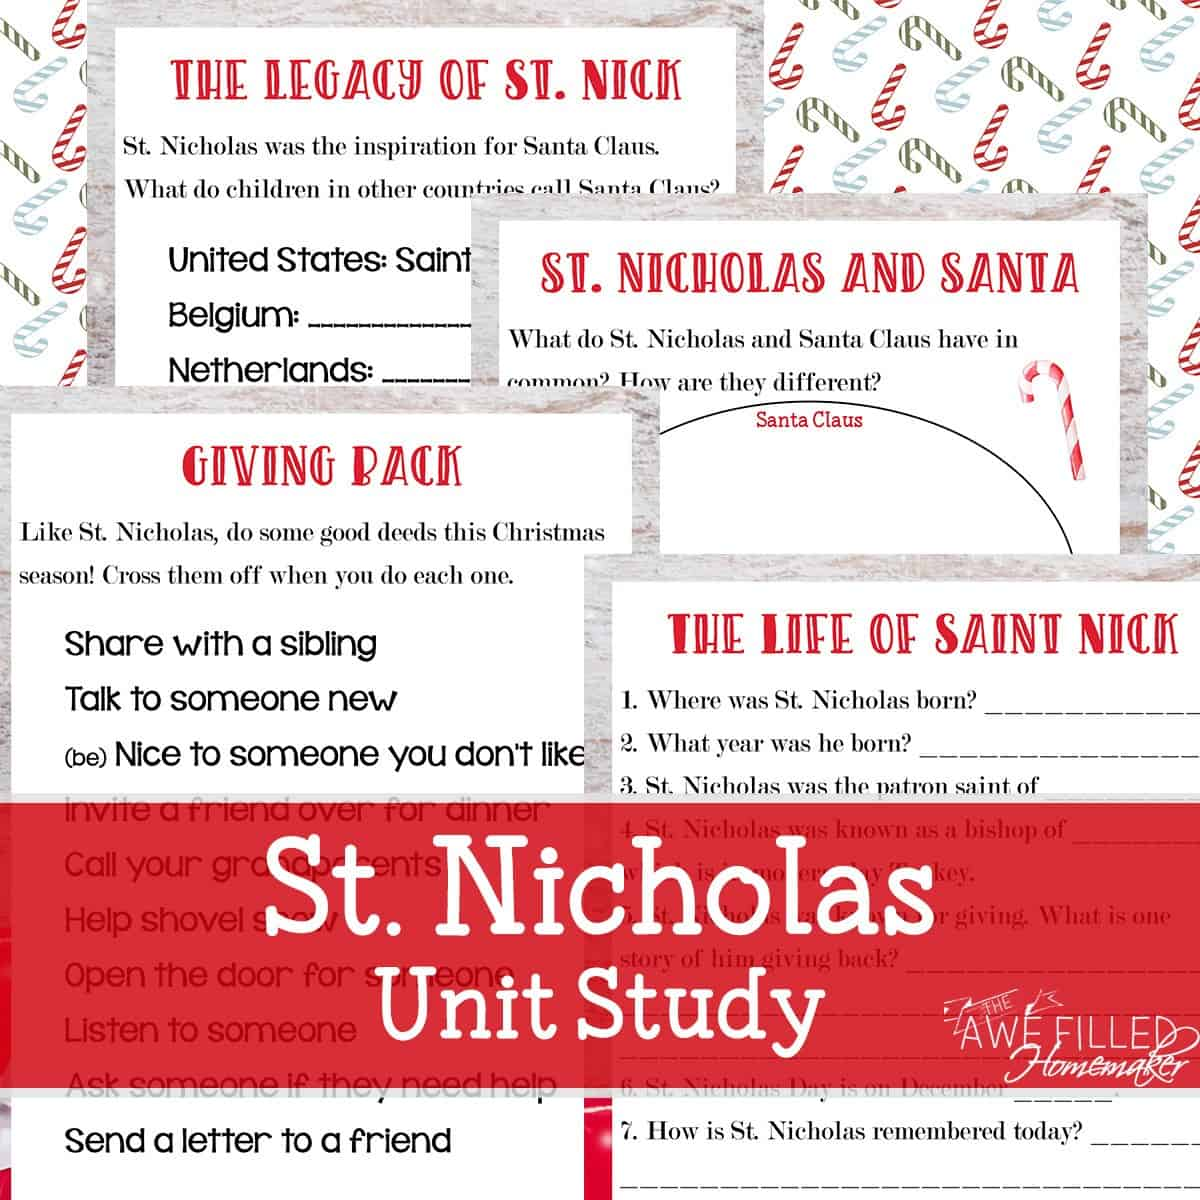 """Introduce your children to the true story of Saint Nicholas with the St. Nicholas Unit Study and """"Give Back"""" Challenge from Awefilled Homemaker. http://lotanner.com/saint-nicholas/ @mrslotanner"""